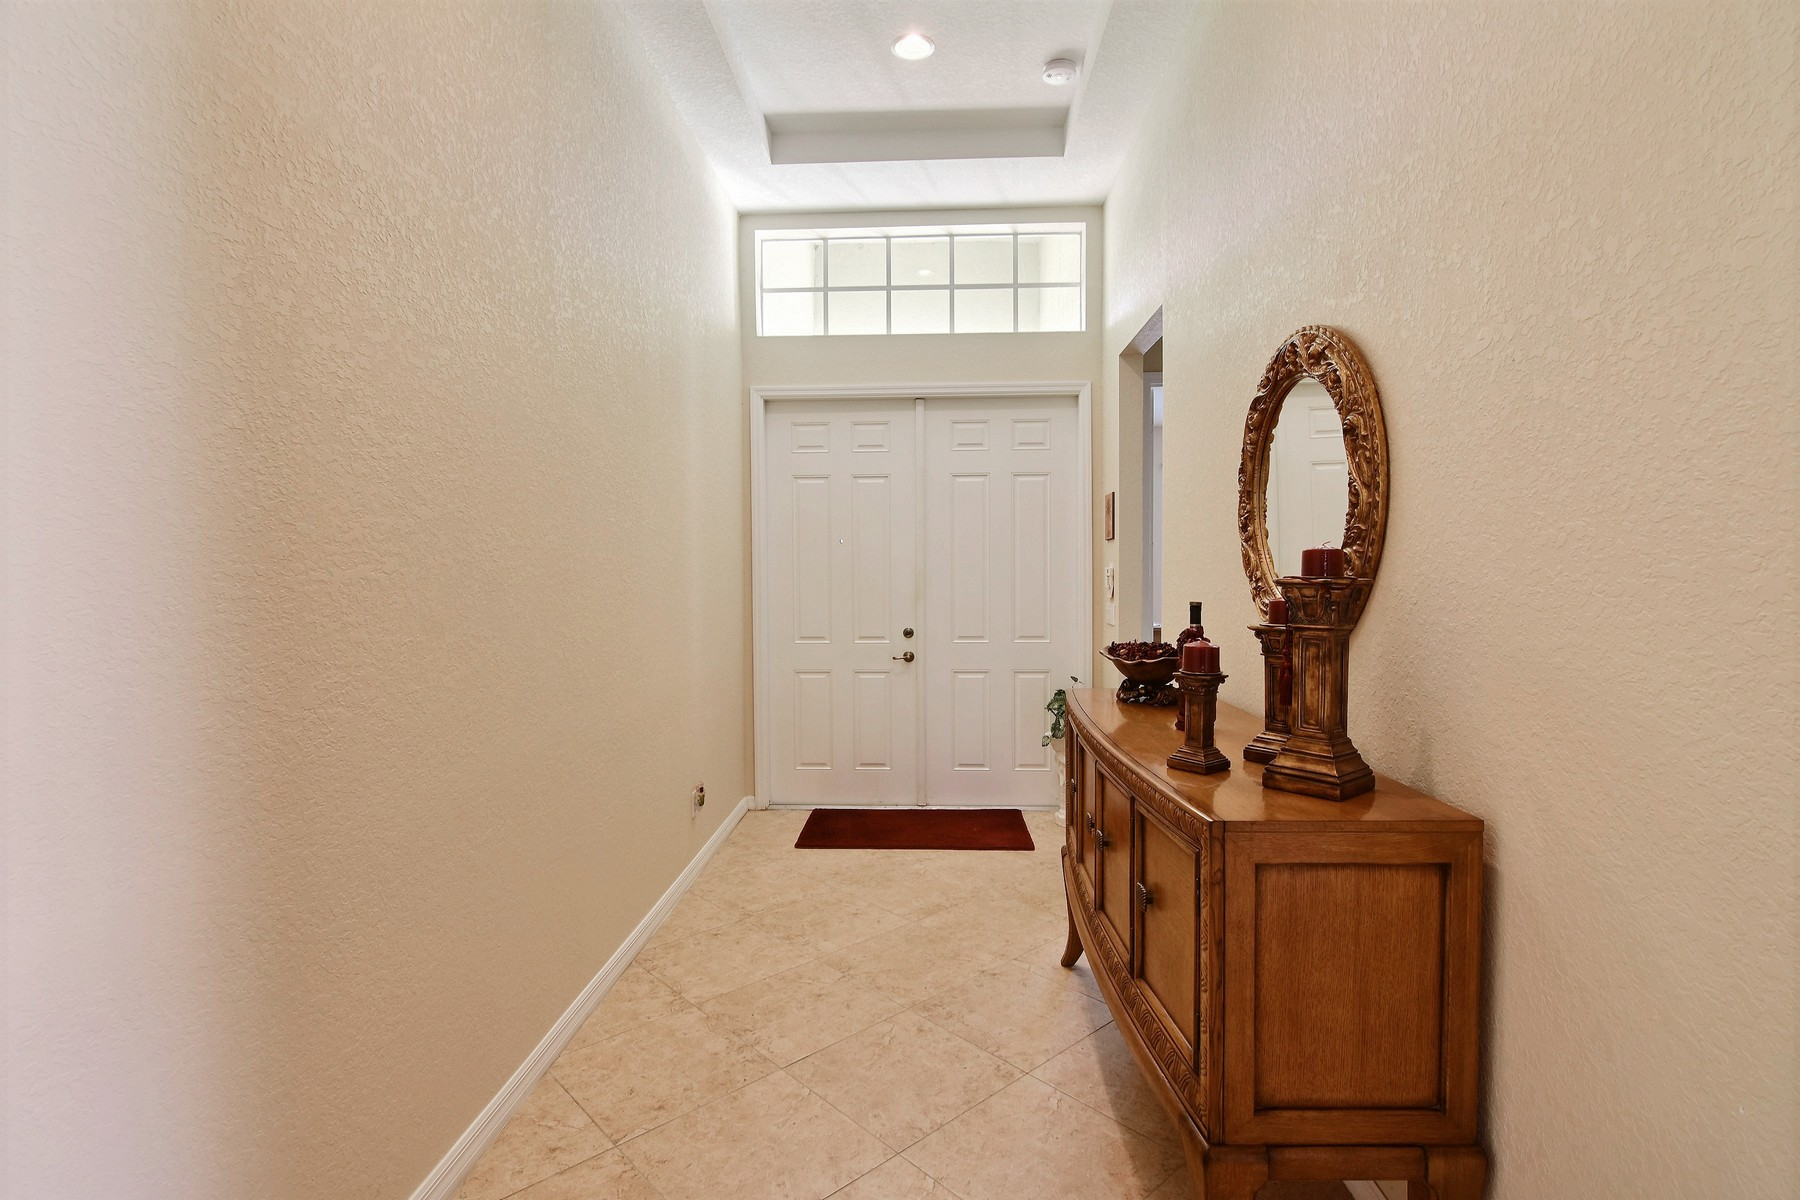 Additional photo for property listing at Spectacular Four Bedroom Home 6212 Coverty Place Vero Beach, Florida 32966 United States